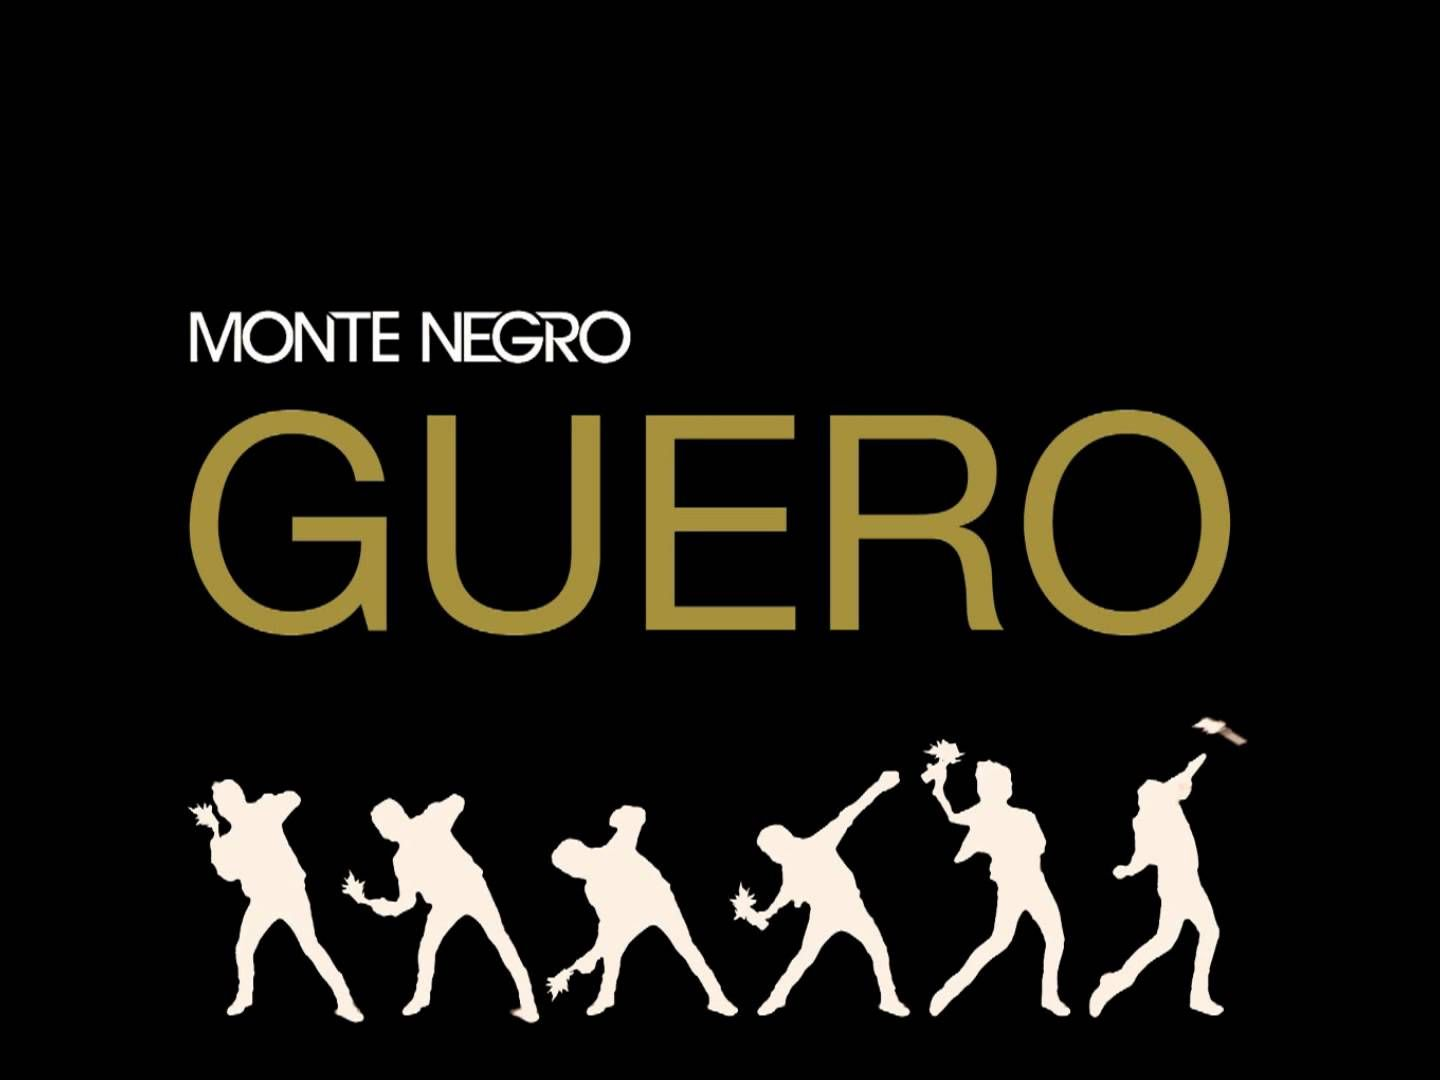 #Guero (The Underdog) - #MonteNegro #Music #Video  <3  ::)